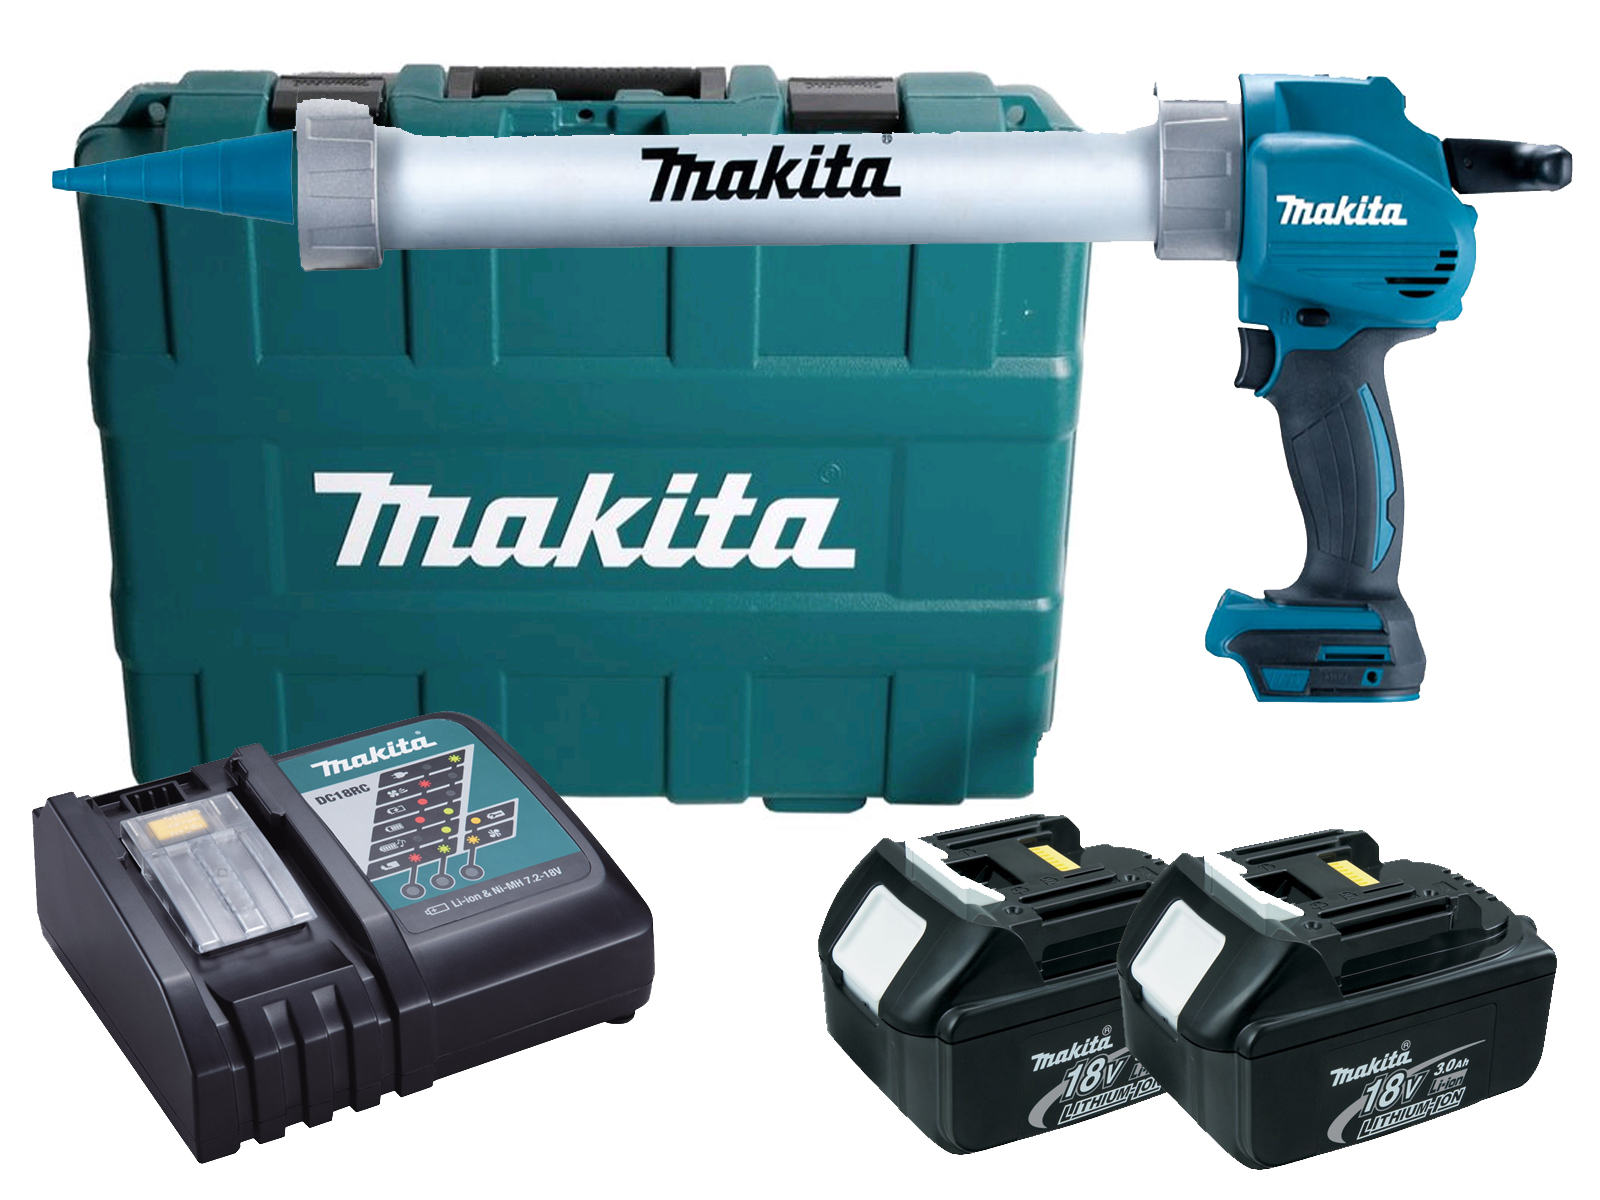 MAKITA 18V 600ML ALUMINIUM CAULKING GUN & CASE - DCG180 - 3.0AH PACK